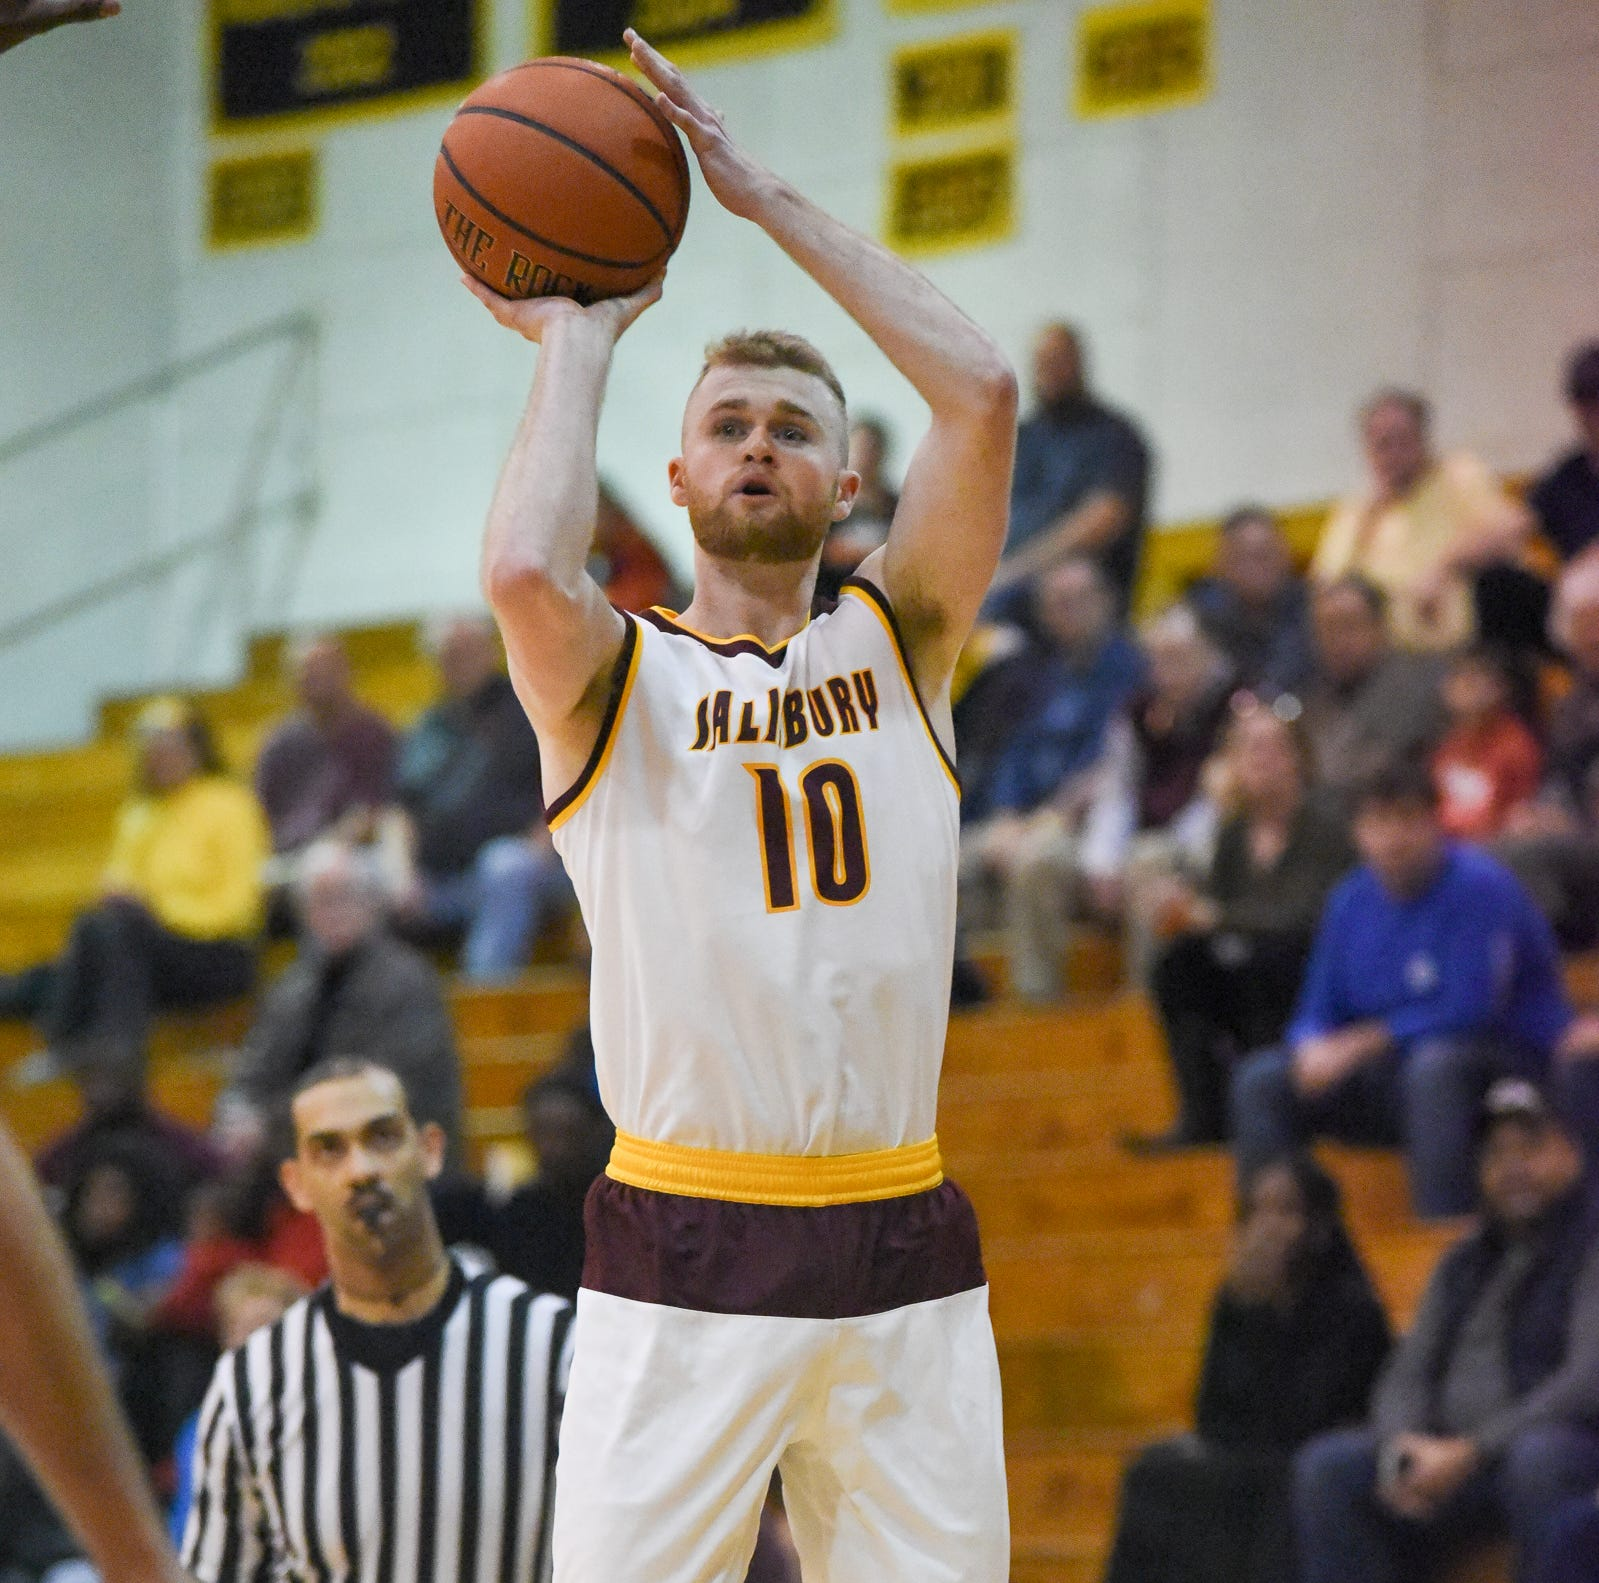 Salisbury basketball to hold fundraiser for teammate with cancer